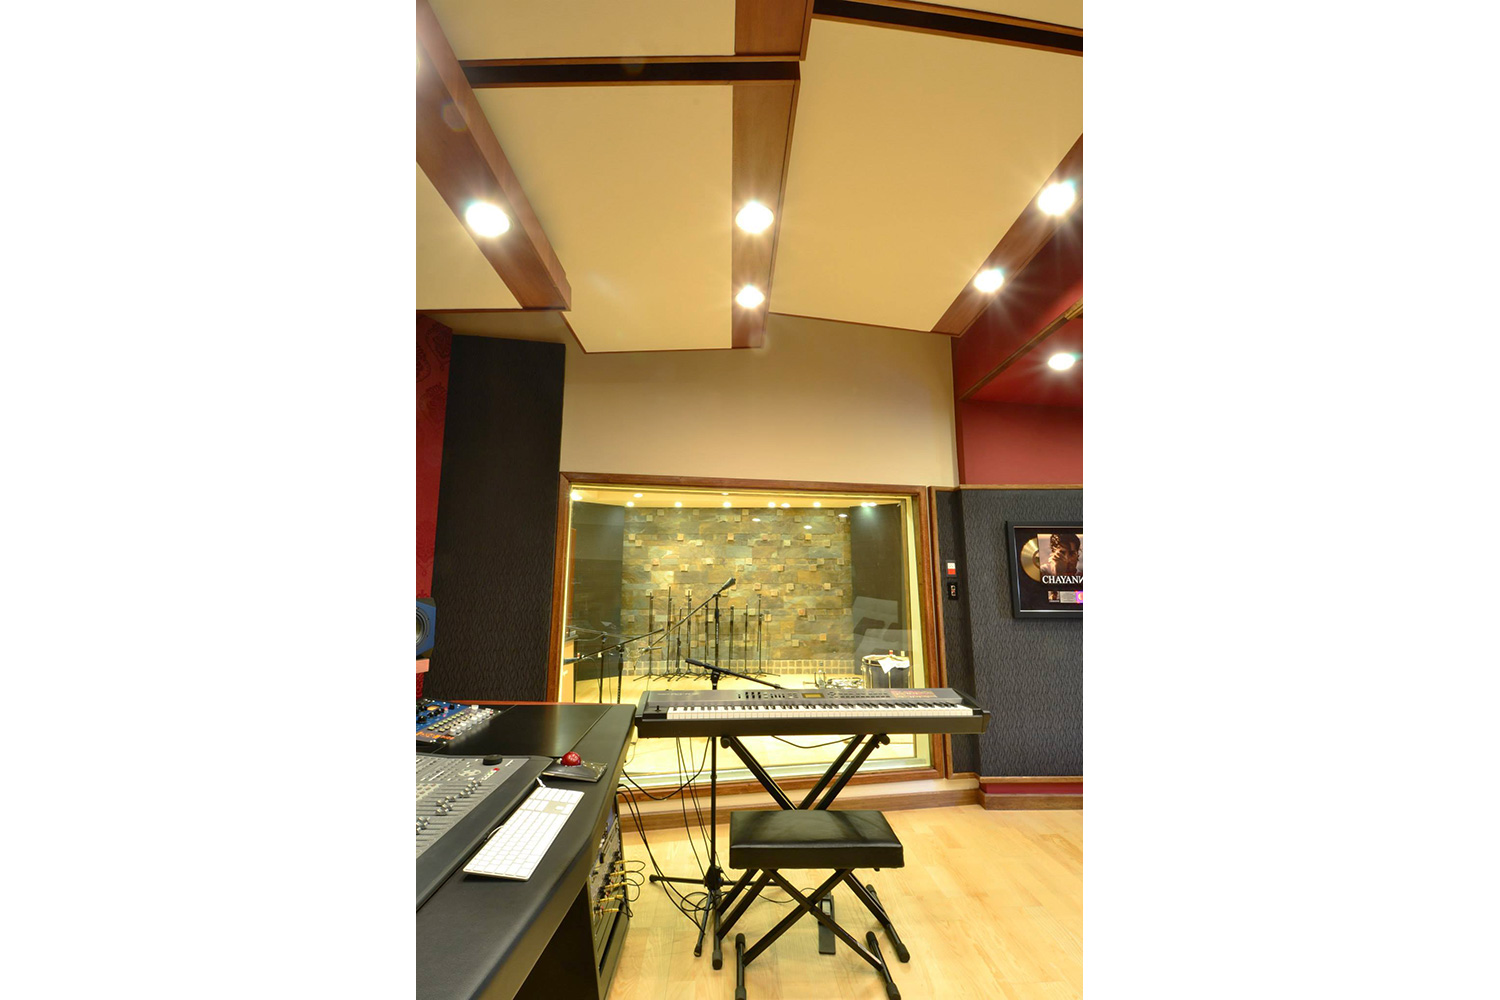 Jose Gentile home recording studio designed by WSDG in Cordoba, Argentina. Control room glass side wall.